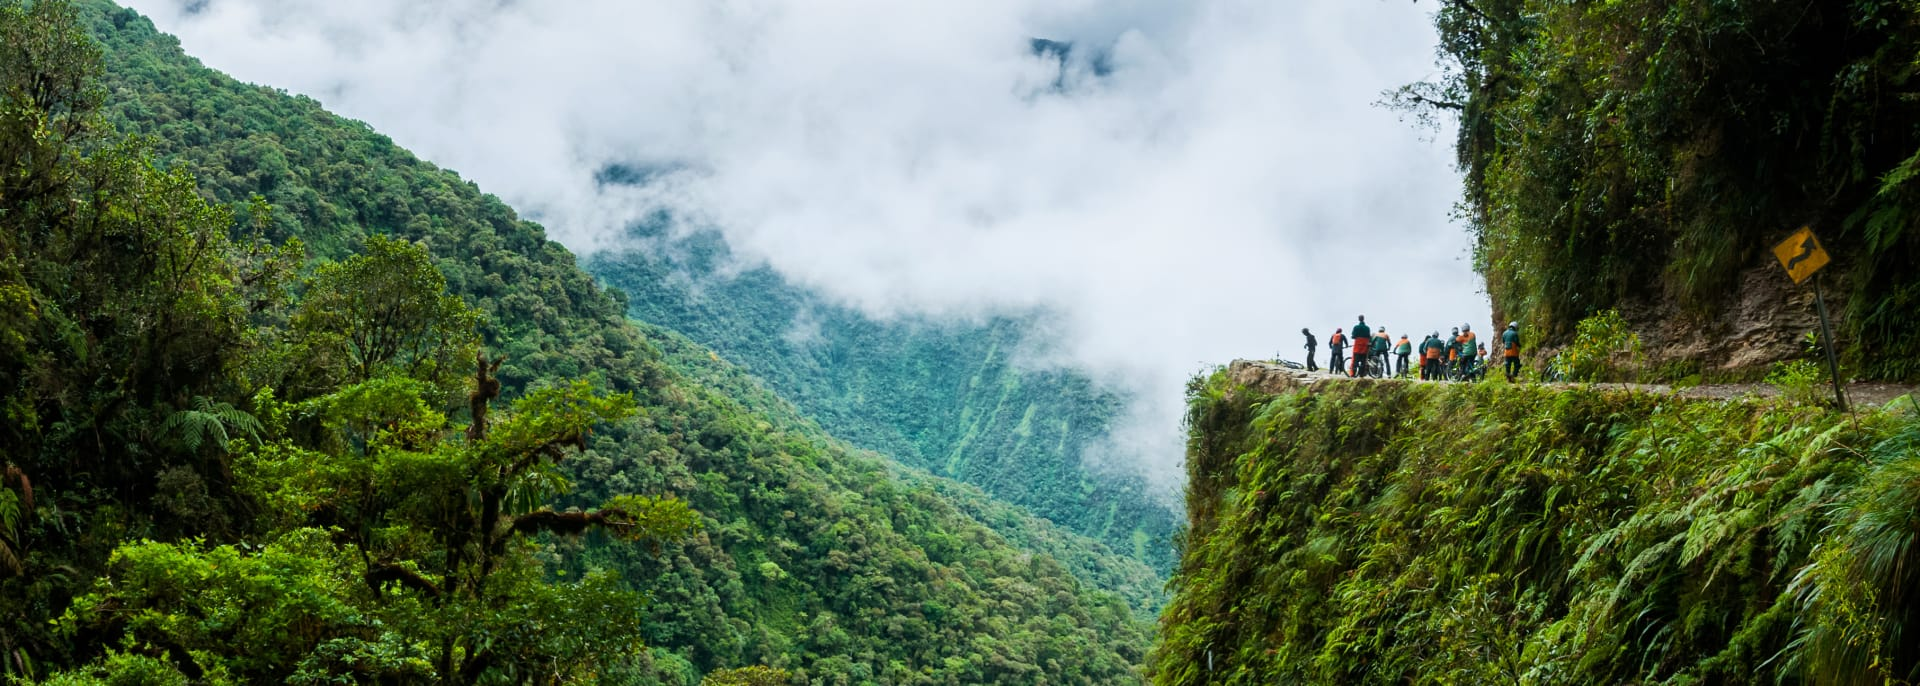 Yungas-Tal, Bolivien